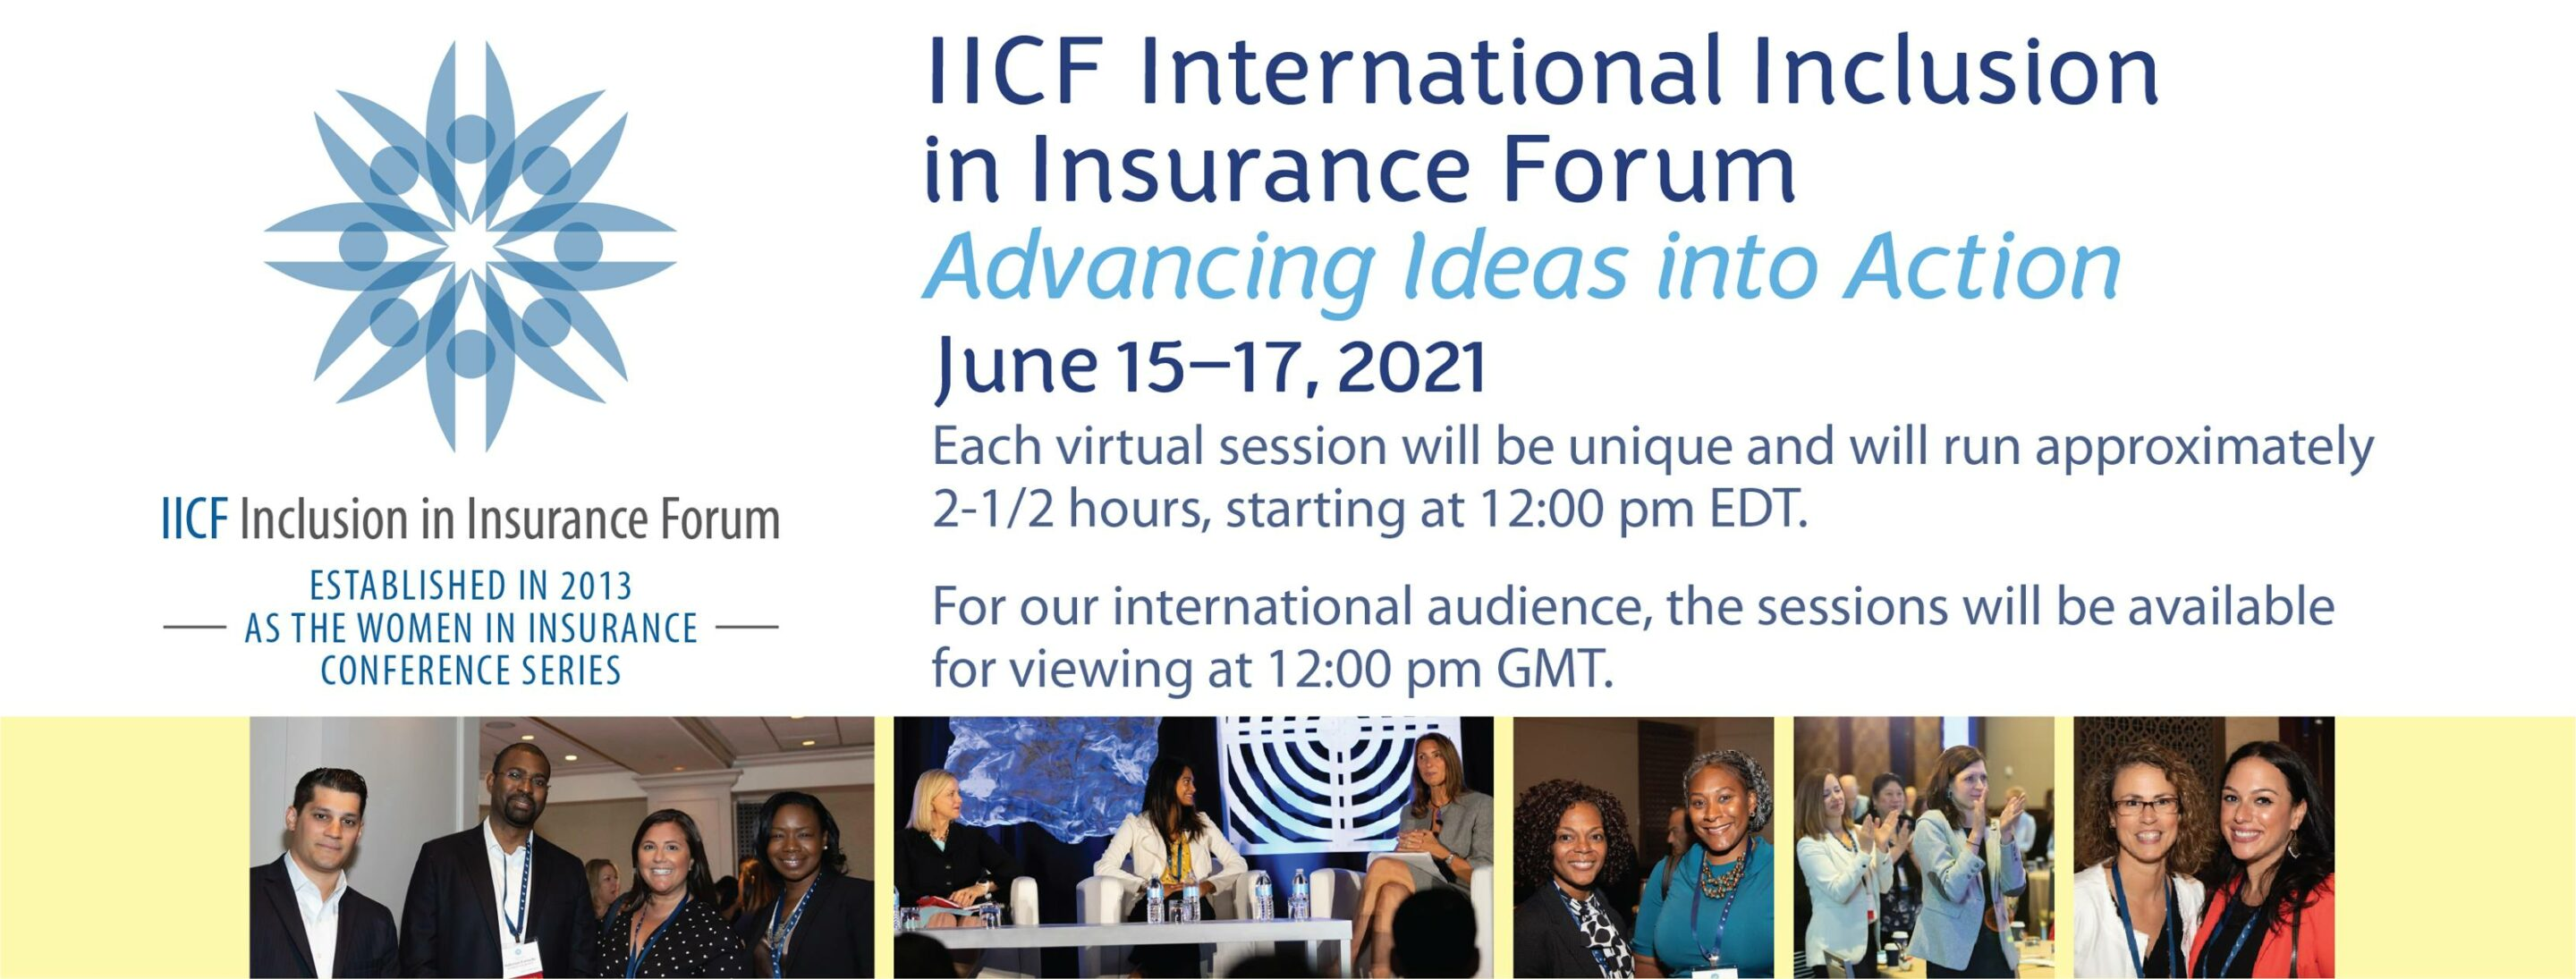 IICF Inclusion in Insurance Forum